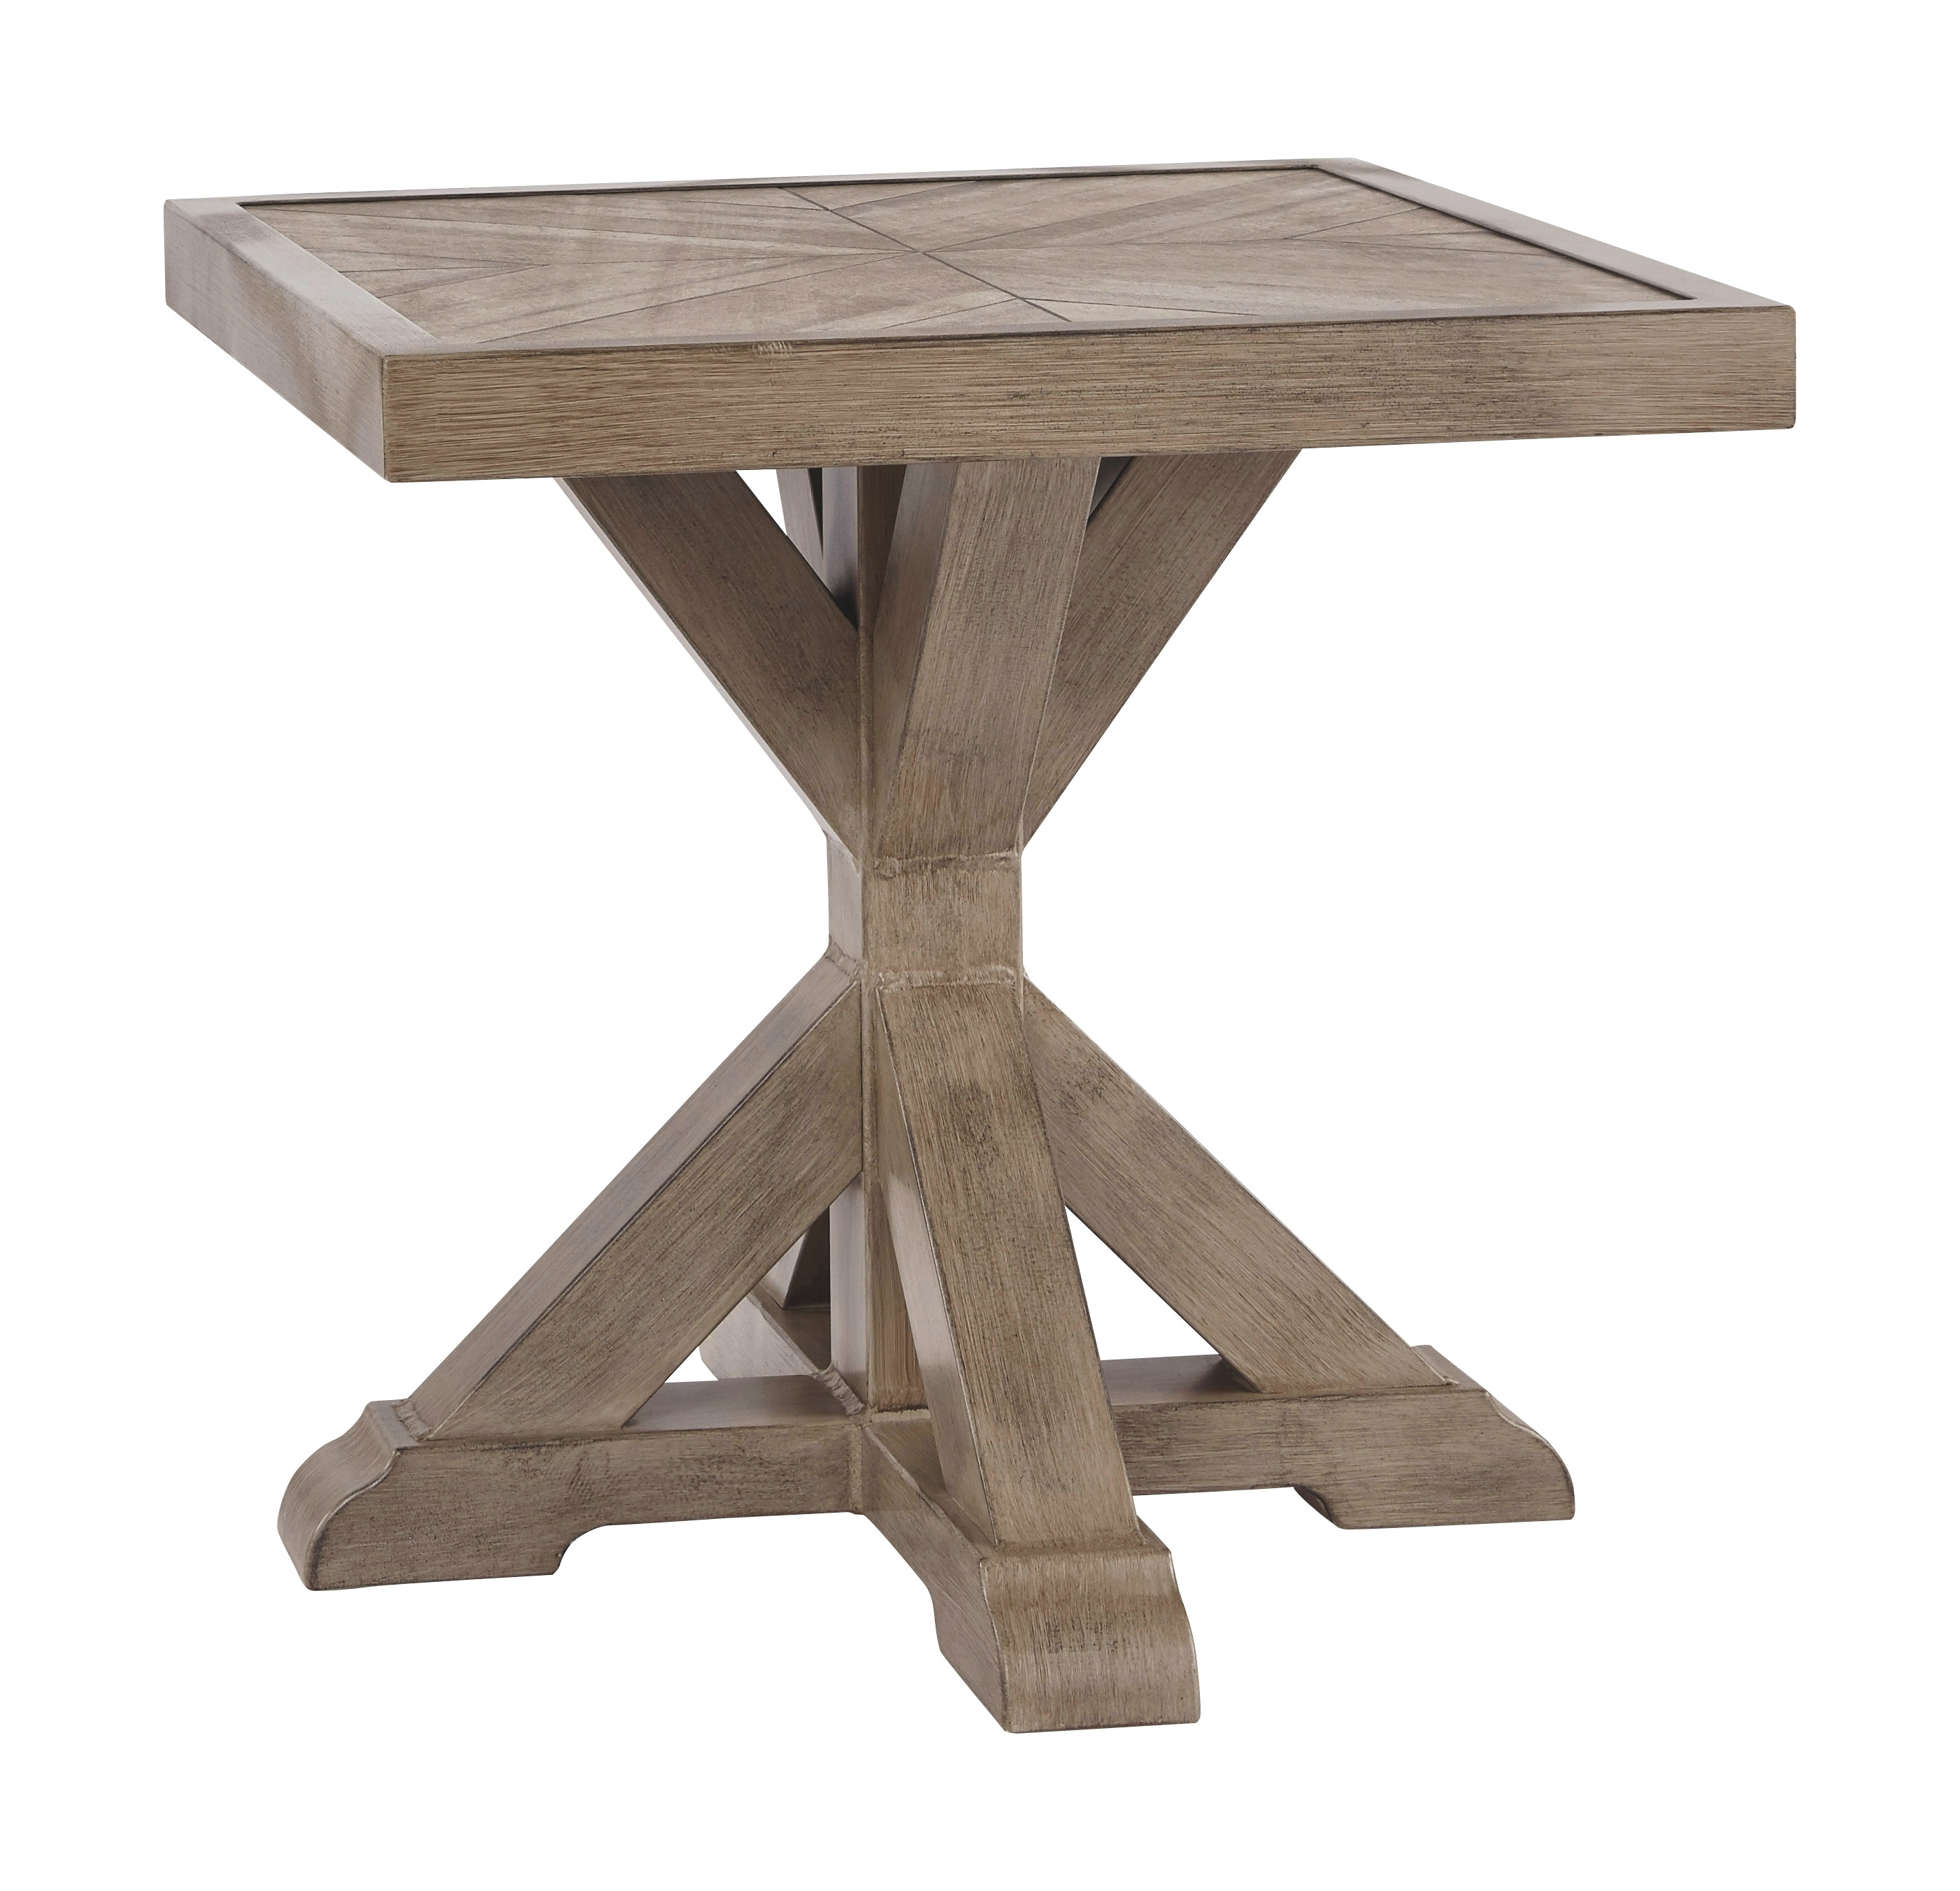 Beachcroft - Beige - Square End Table - Furniture Innovation on Beachcroft Beige Outdoor Living Room Set  id=79269